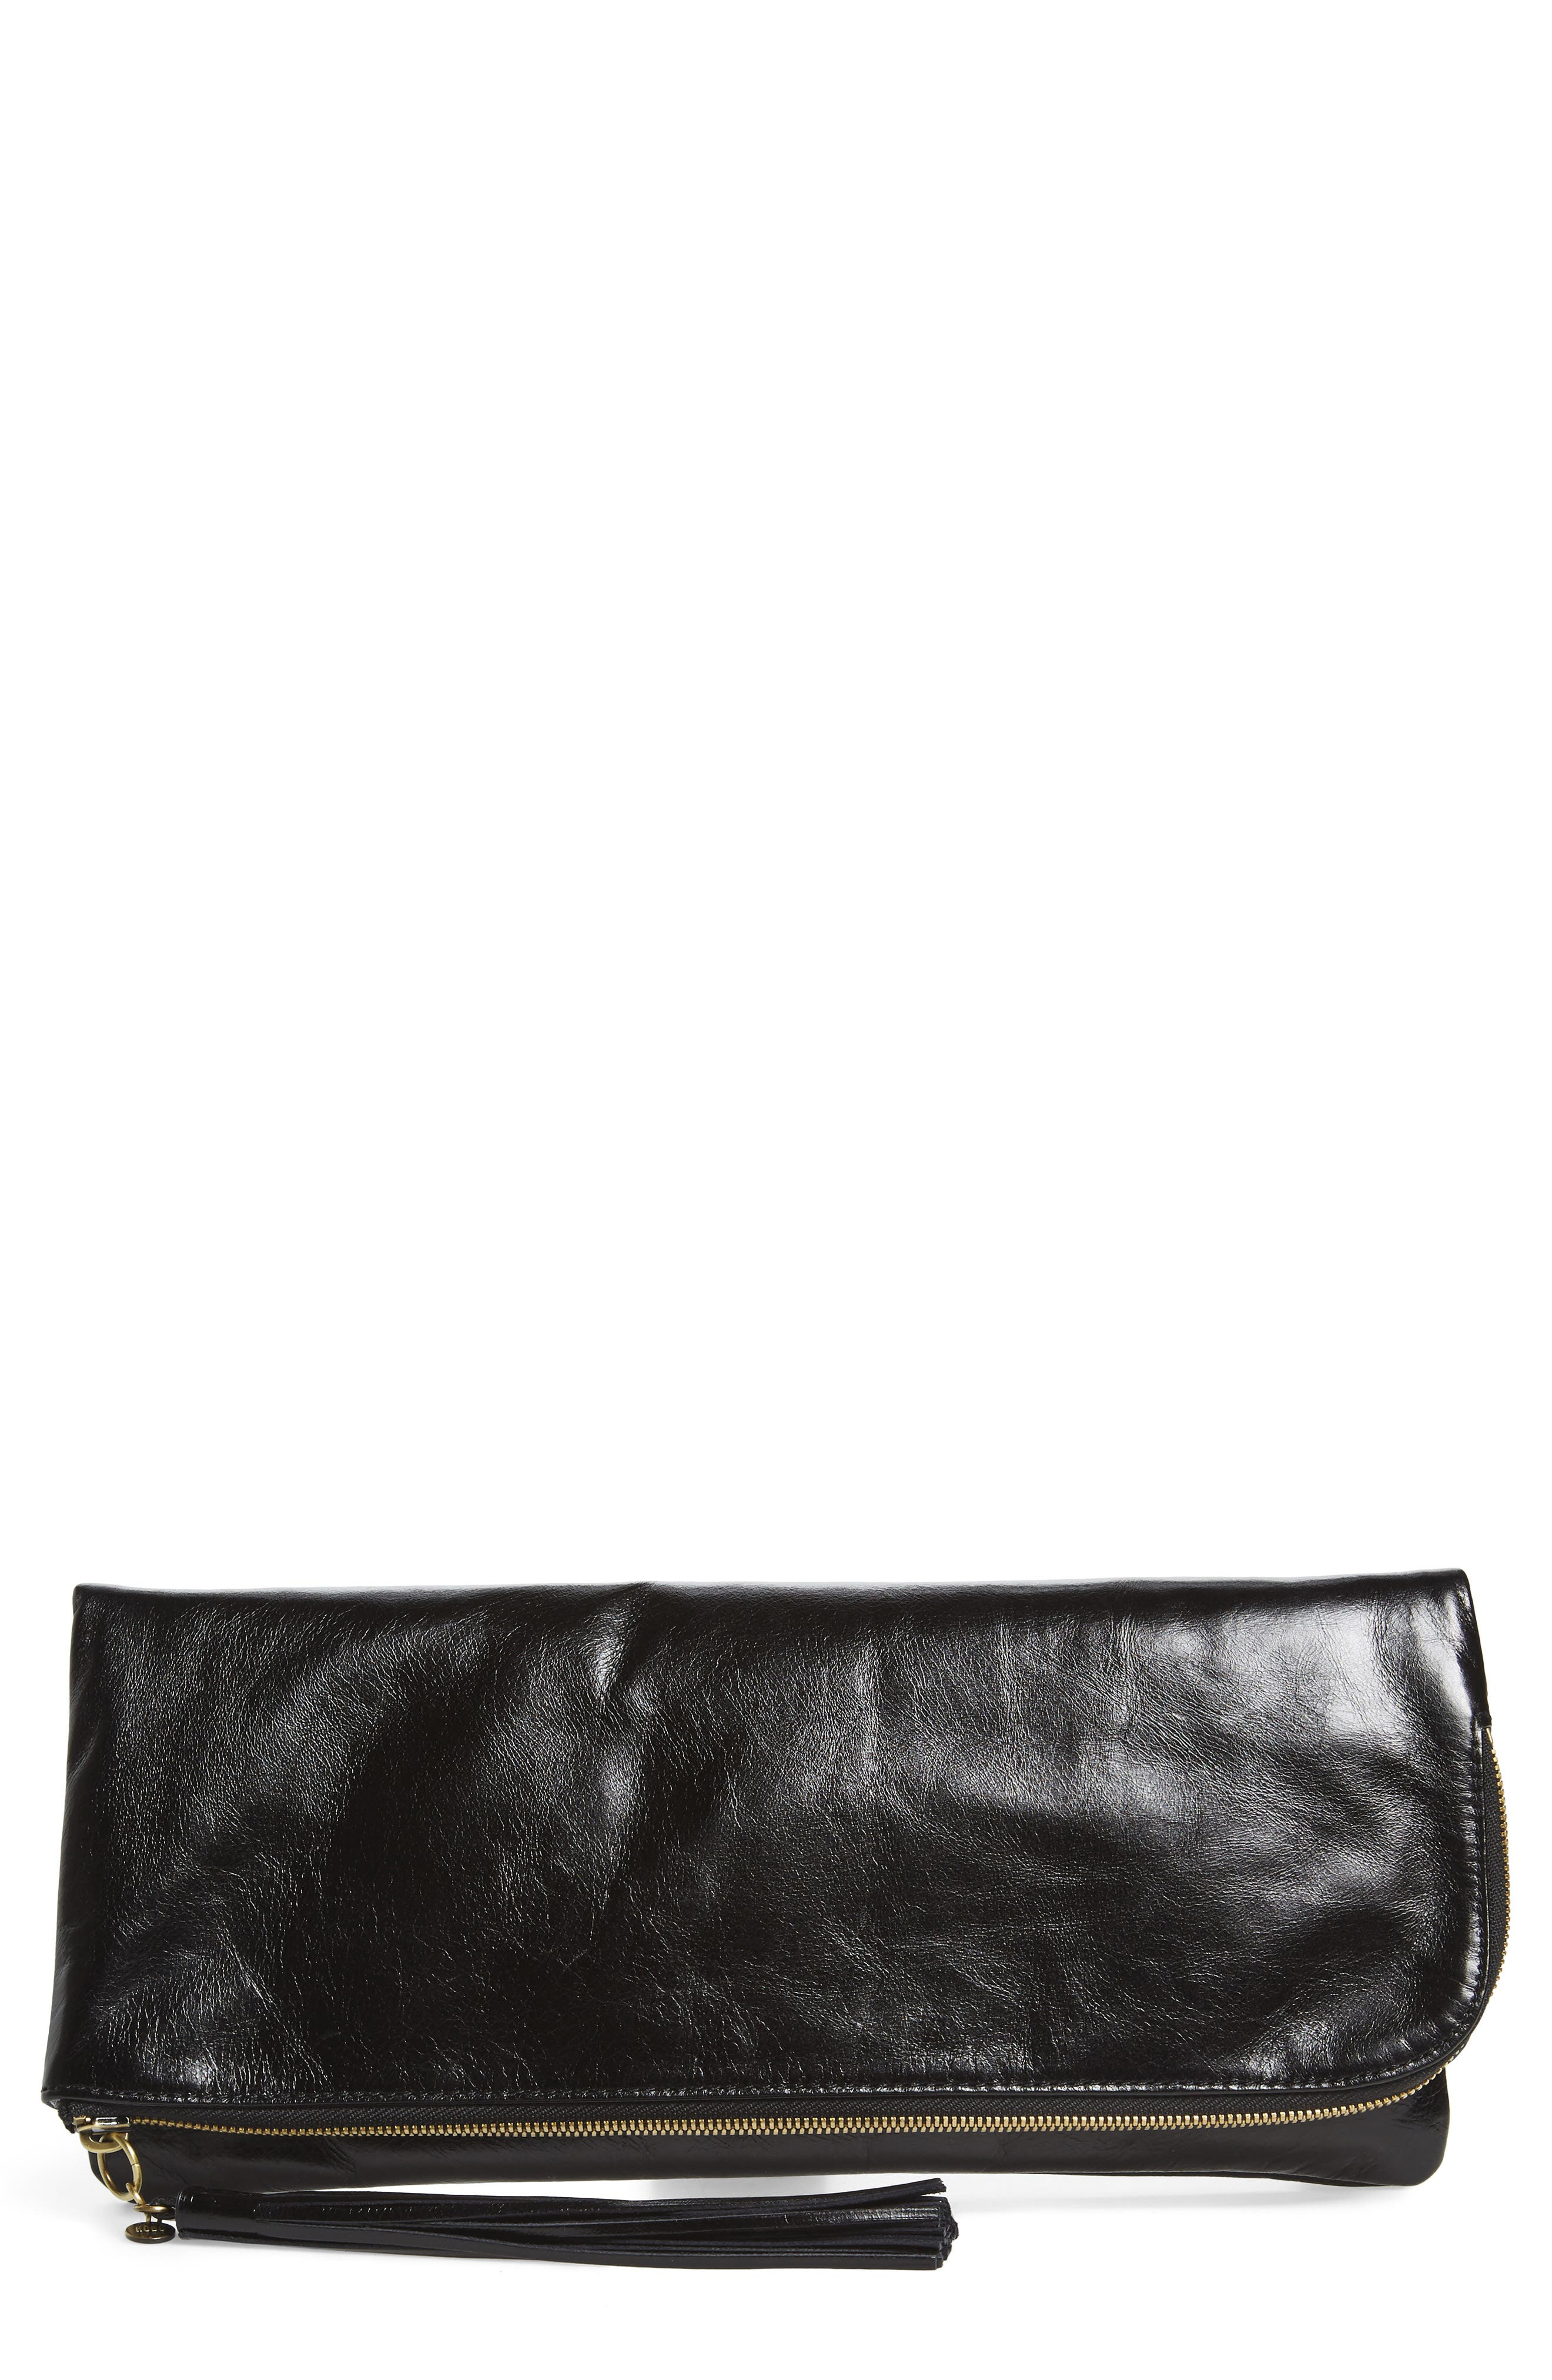 Raine Calfskin Leather Foldover Clutch,                             Main thumbnail 2, color,